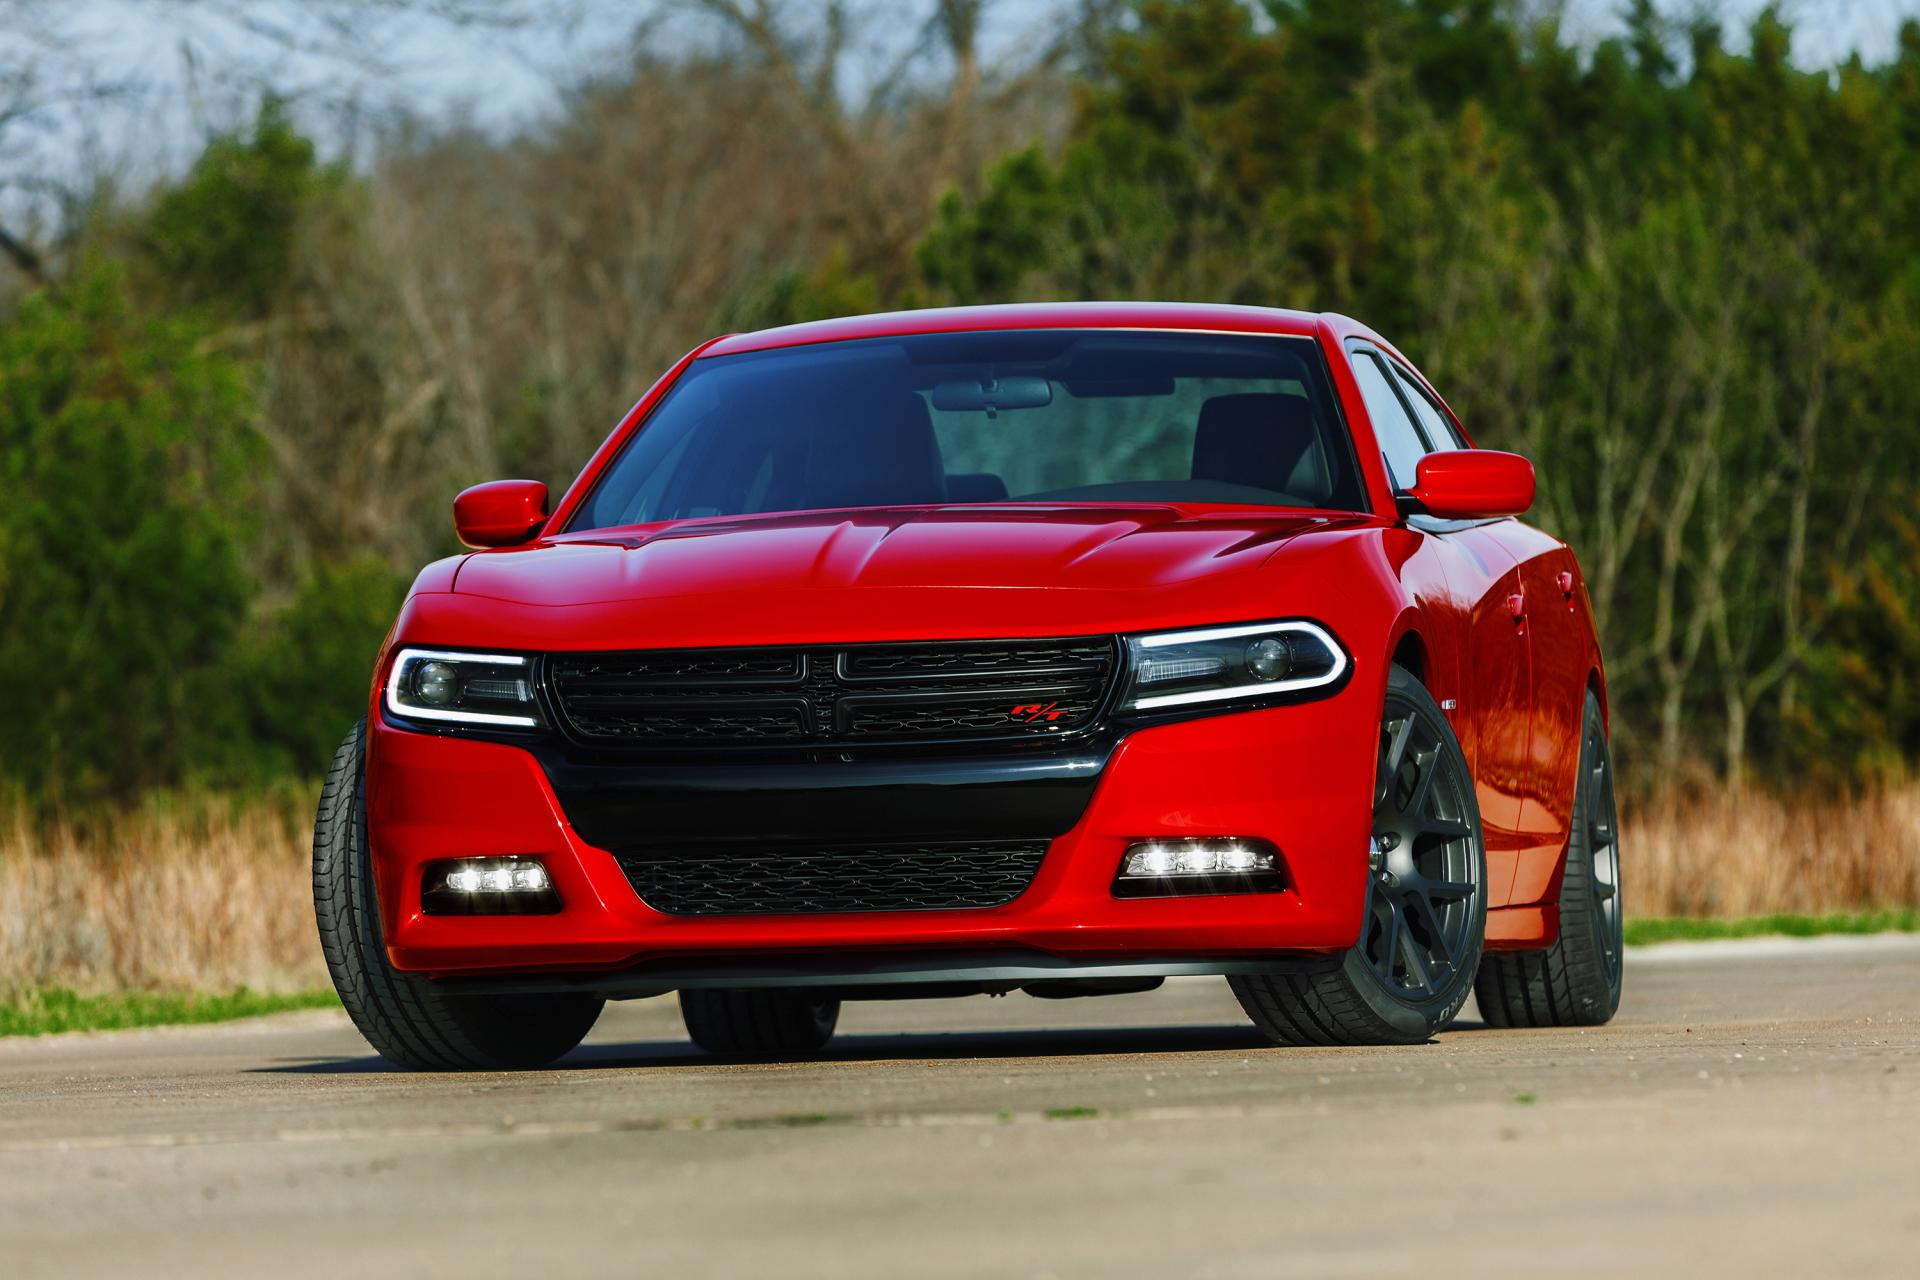 2015 Dodge Charger News and Information